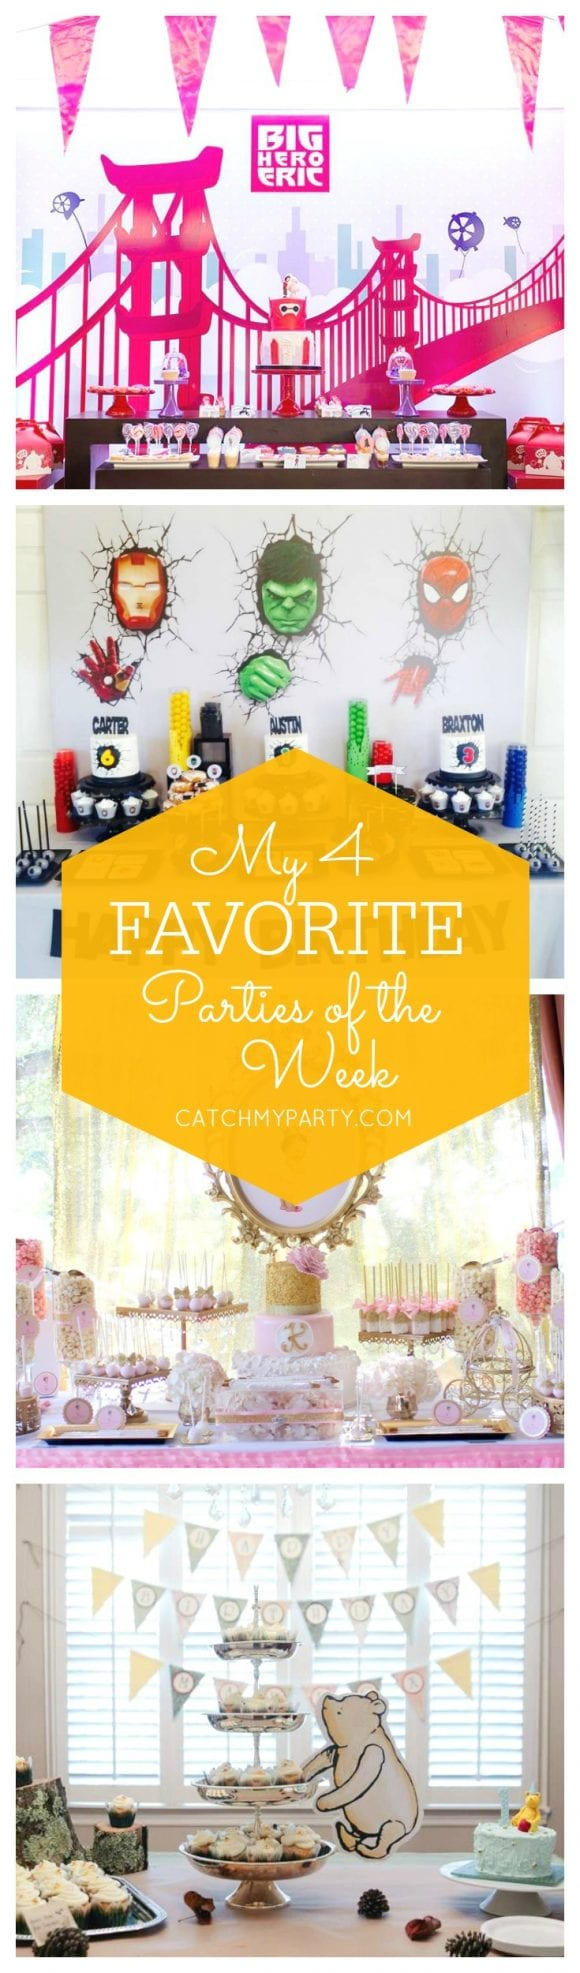 My favorite parties this week include a Big Hero 6 birthday party, a superhero birthday party, a princess baby shower and a Pooh bear 1st birthday party! | Catchmyparty.com